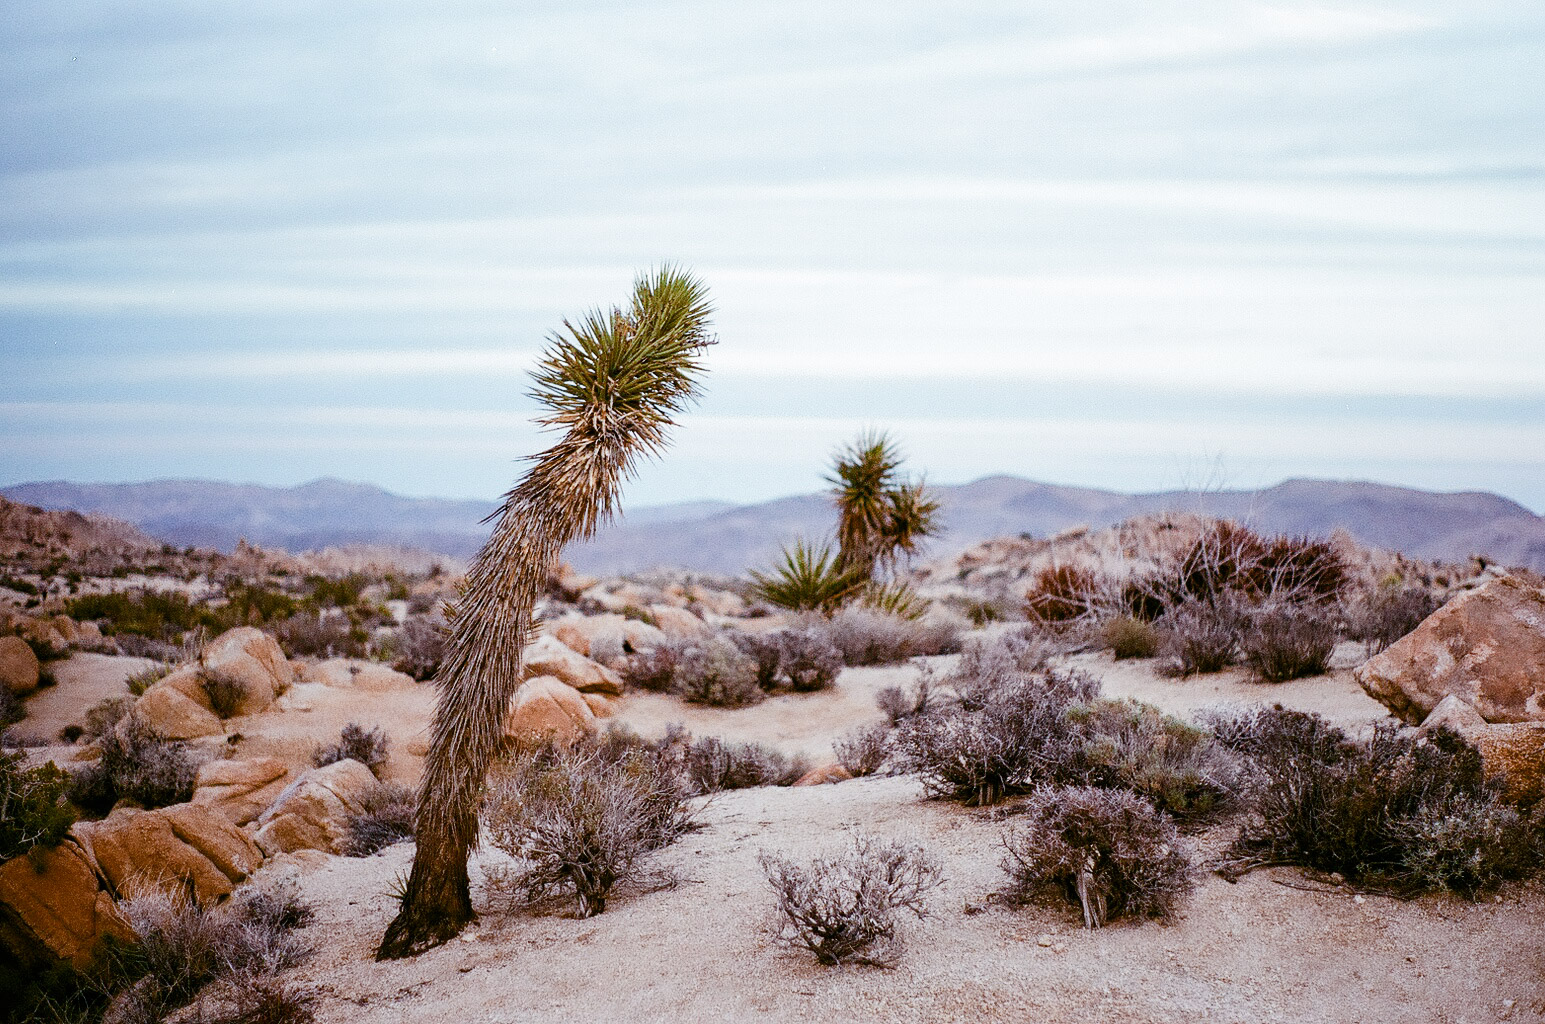 Bad weather turns our planned three nights in Joshua Tree turned into one, but we are still lucky enough to catch a purple fading sunset in this magical place.